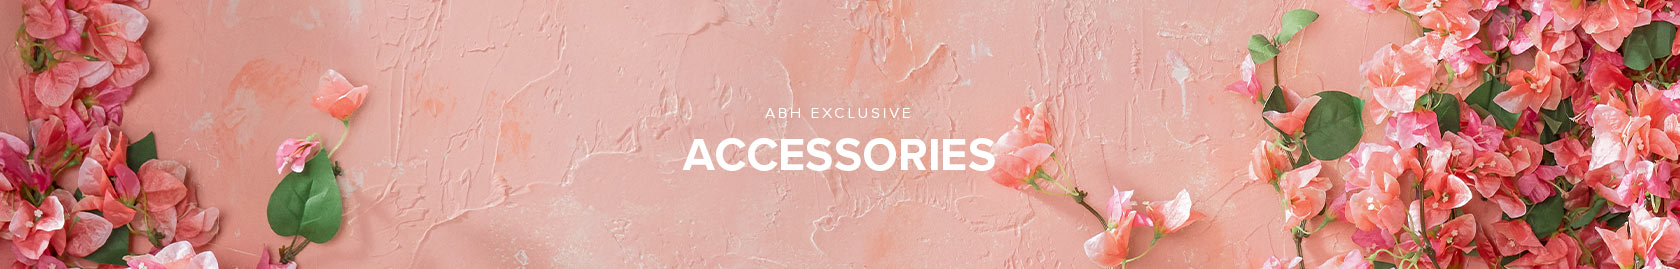 ABH Exclusive Accessories